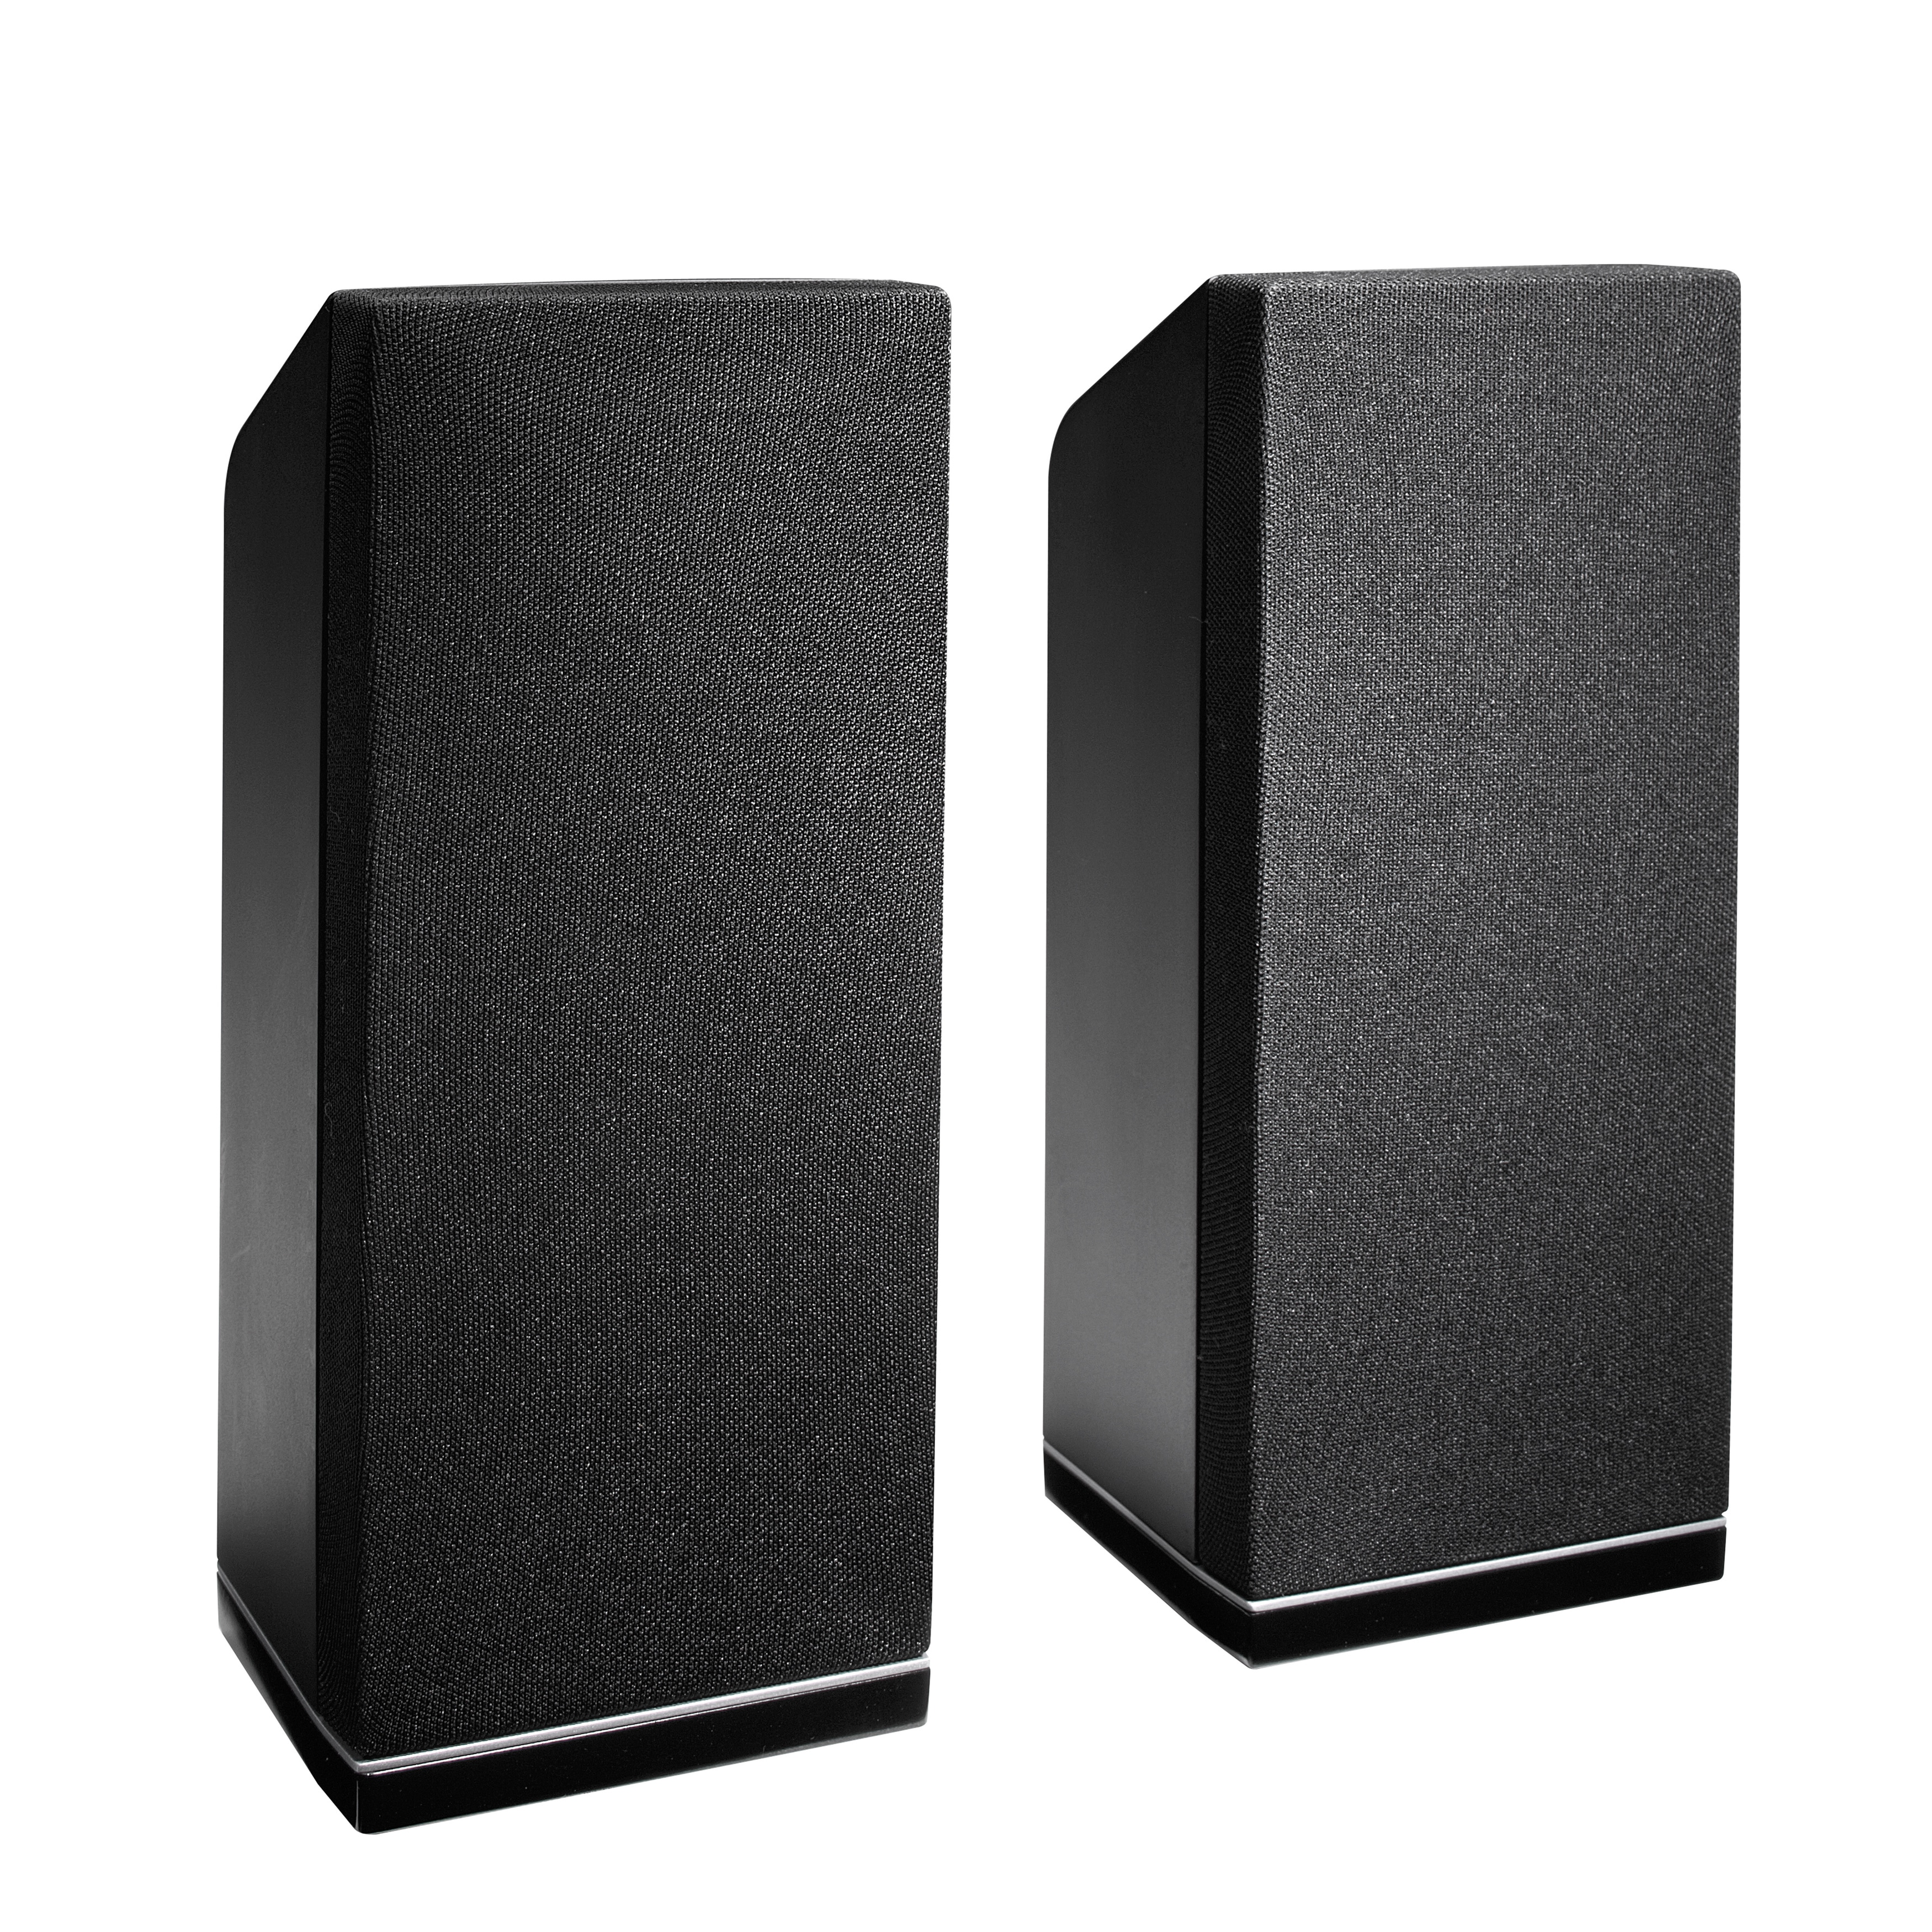 Vizio S4251w B4 42 Inch 5 1 Channel Sound Bar With Wireless Subwoofer Satellite Speakers Free Shipping Today 8944186